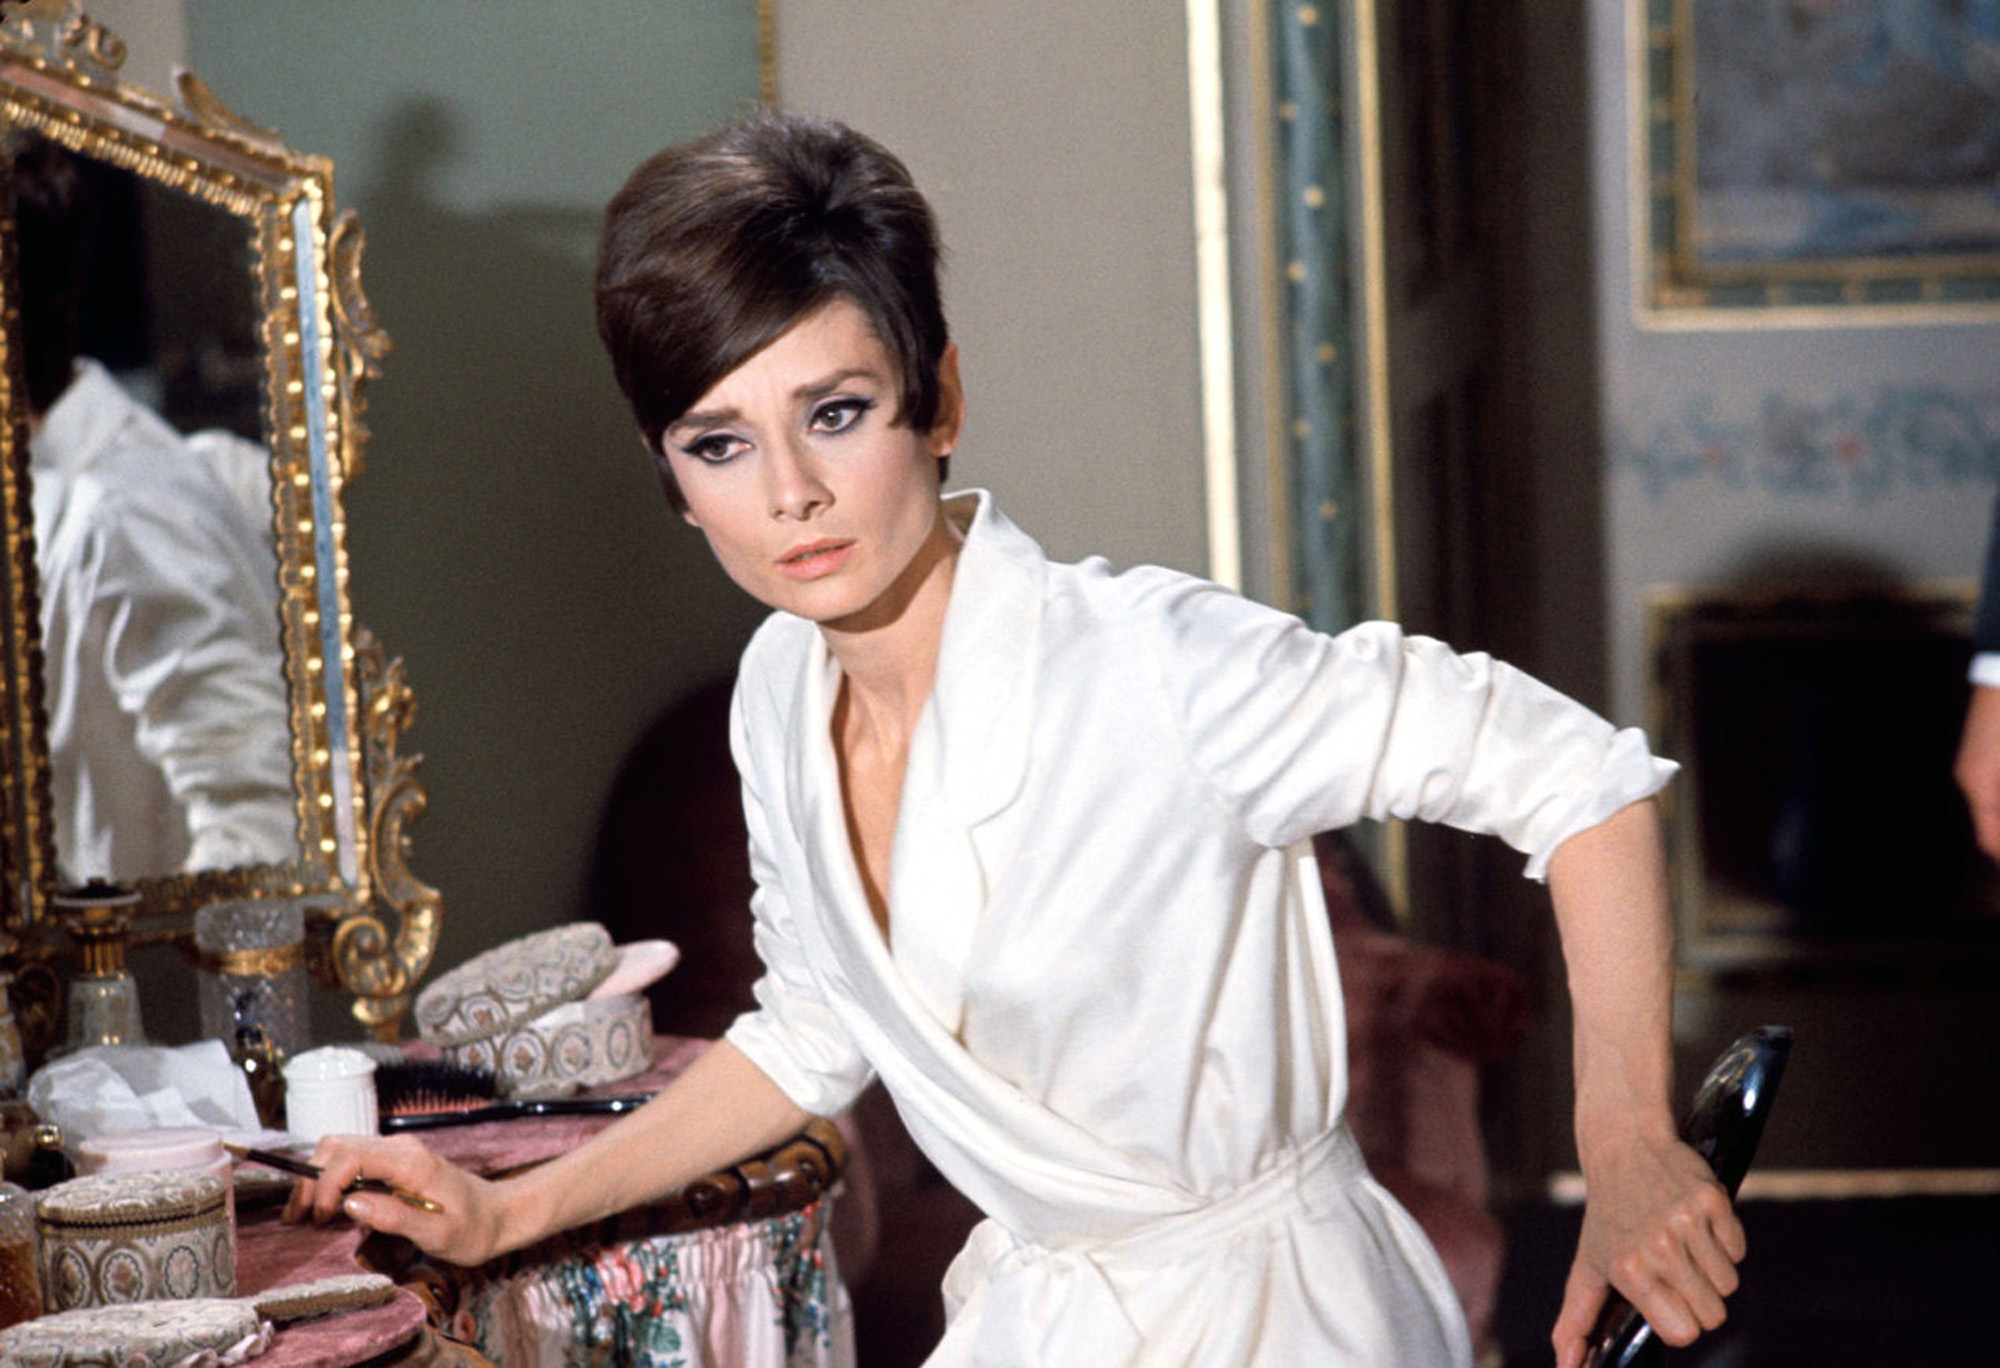 Audrey hepburn how to steal a million 1966 starring peter o toole